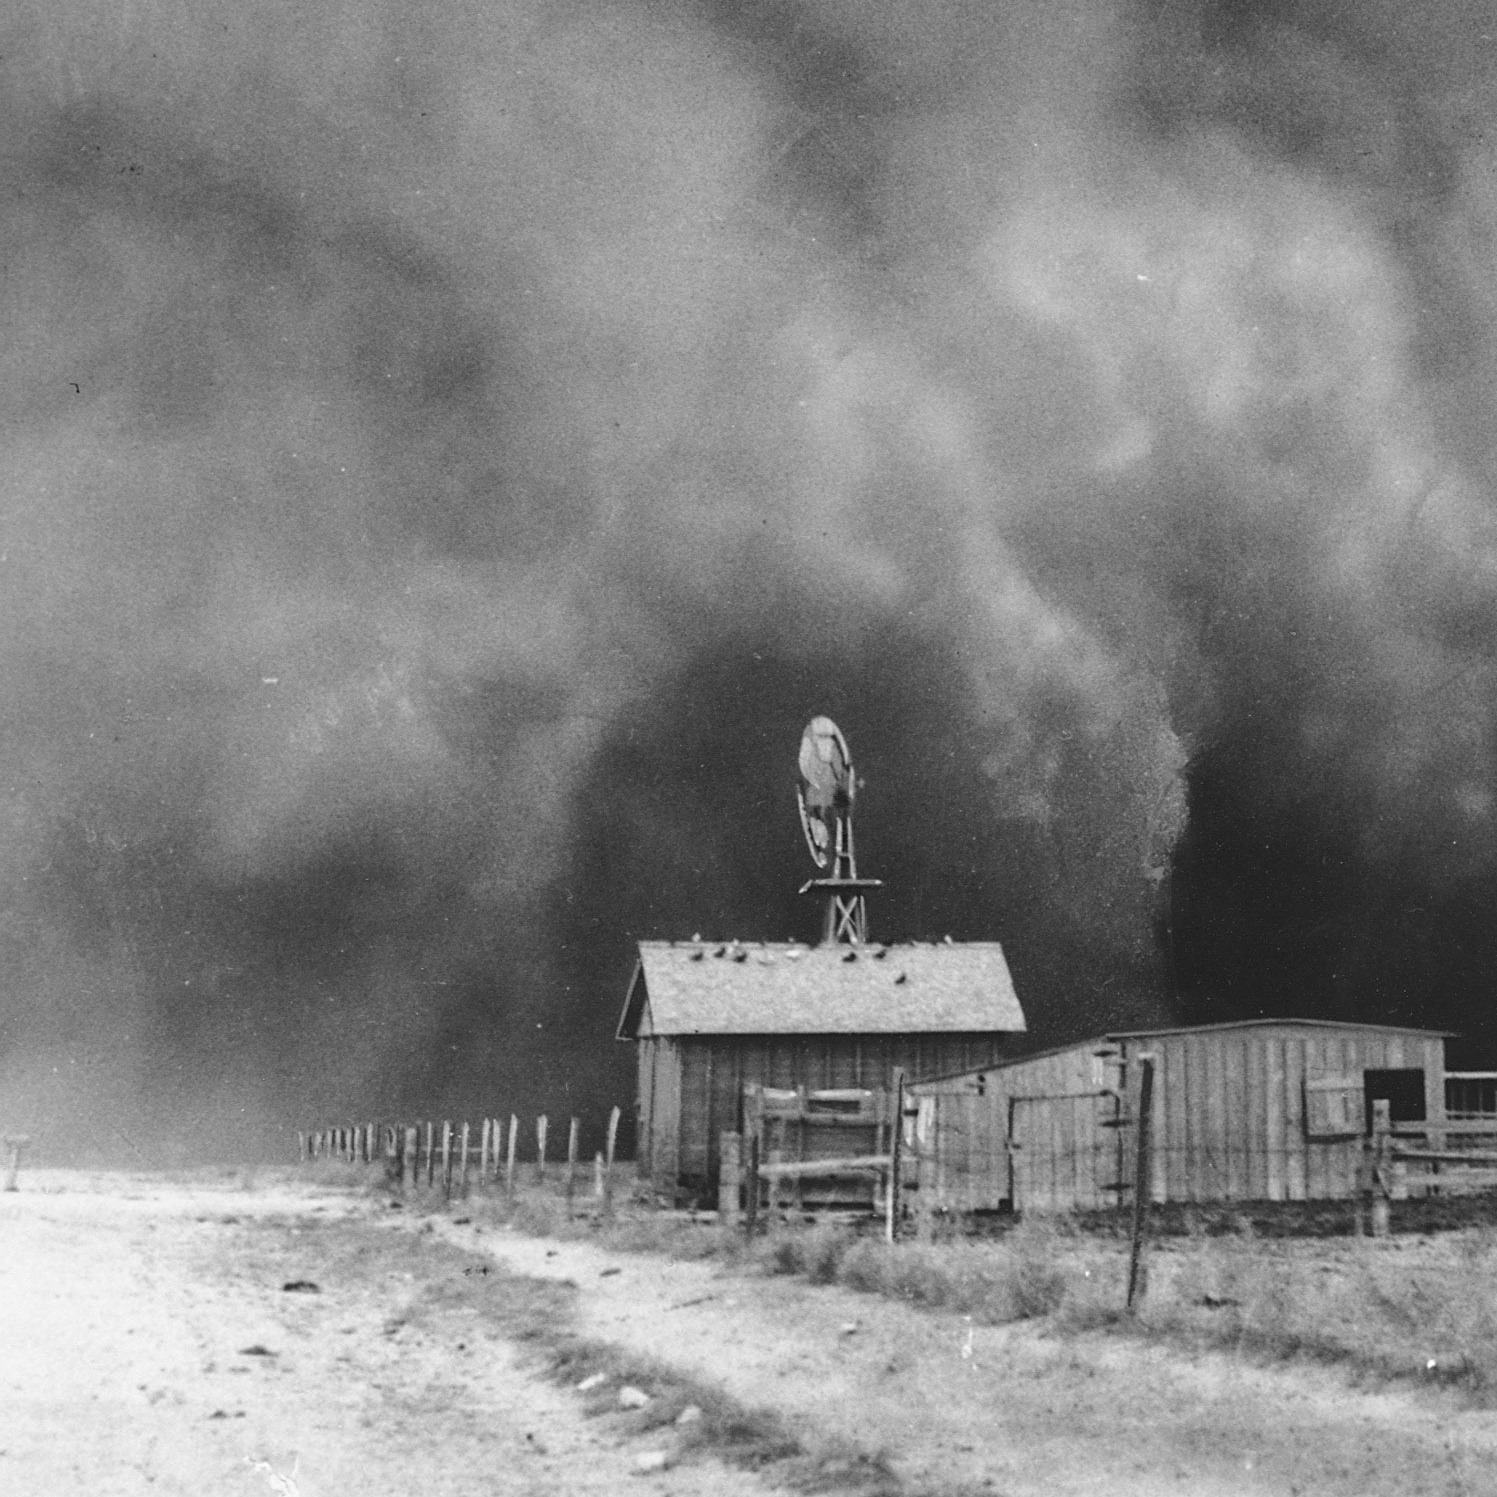 grapes of wrath dustbowl disaster He is most known for his iconic novel, the grapes of wrath, 1939, which described in detail the migration of the joad family from their dust storm devastated farmland to.